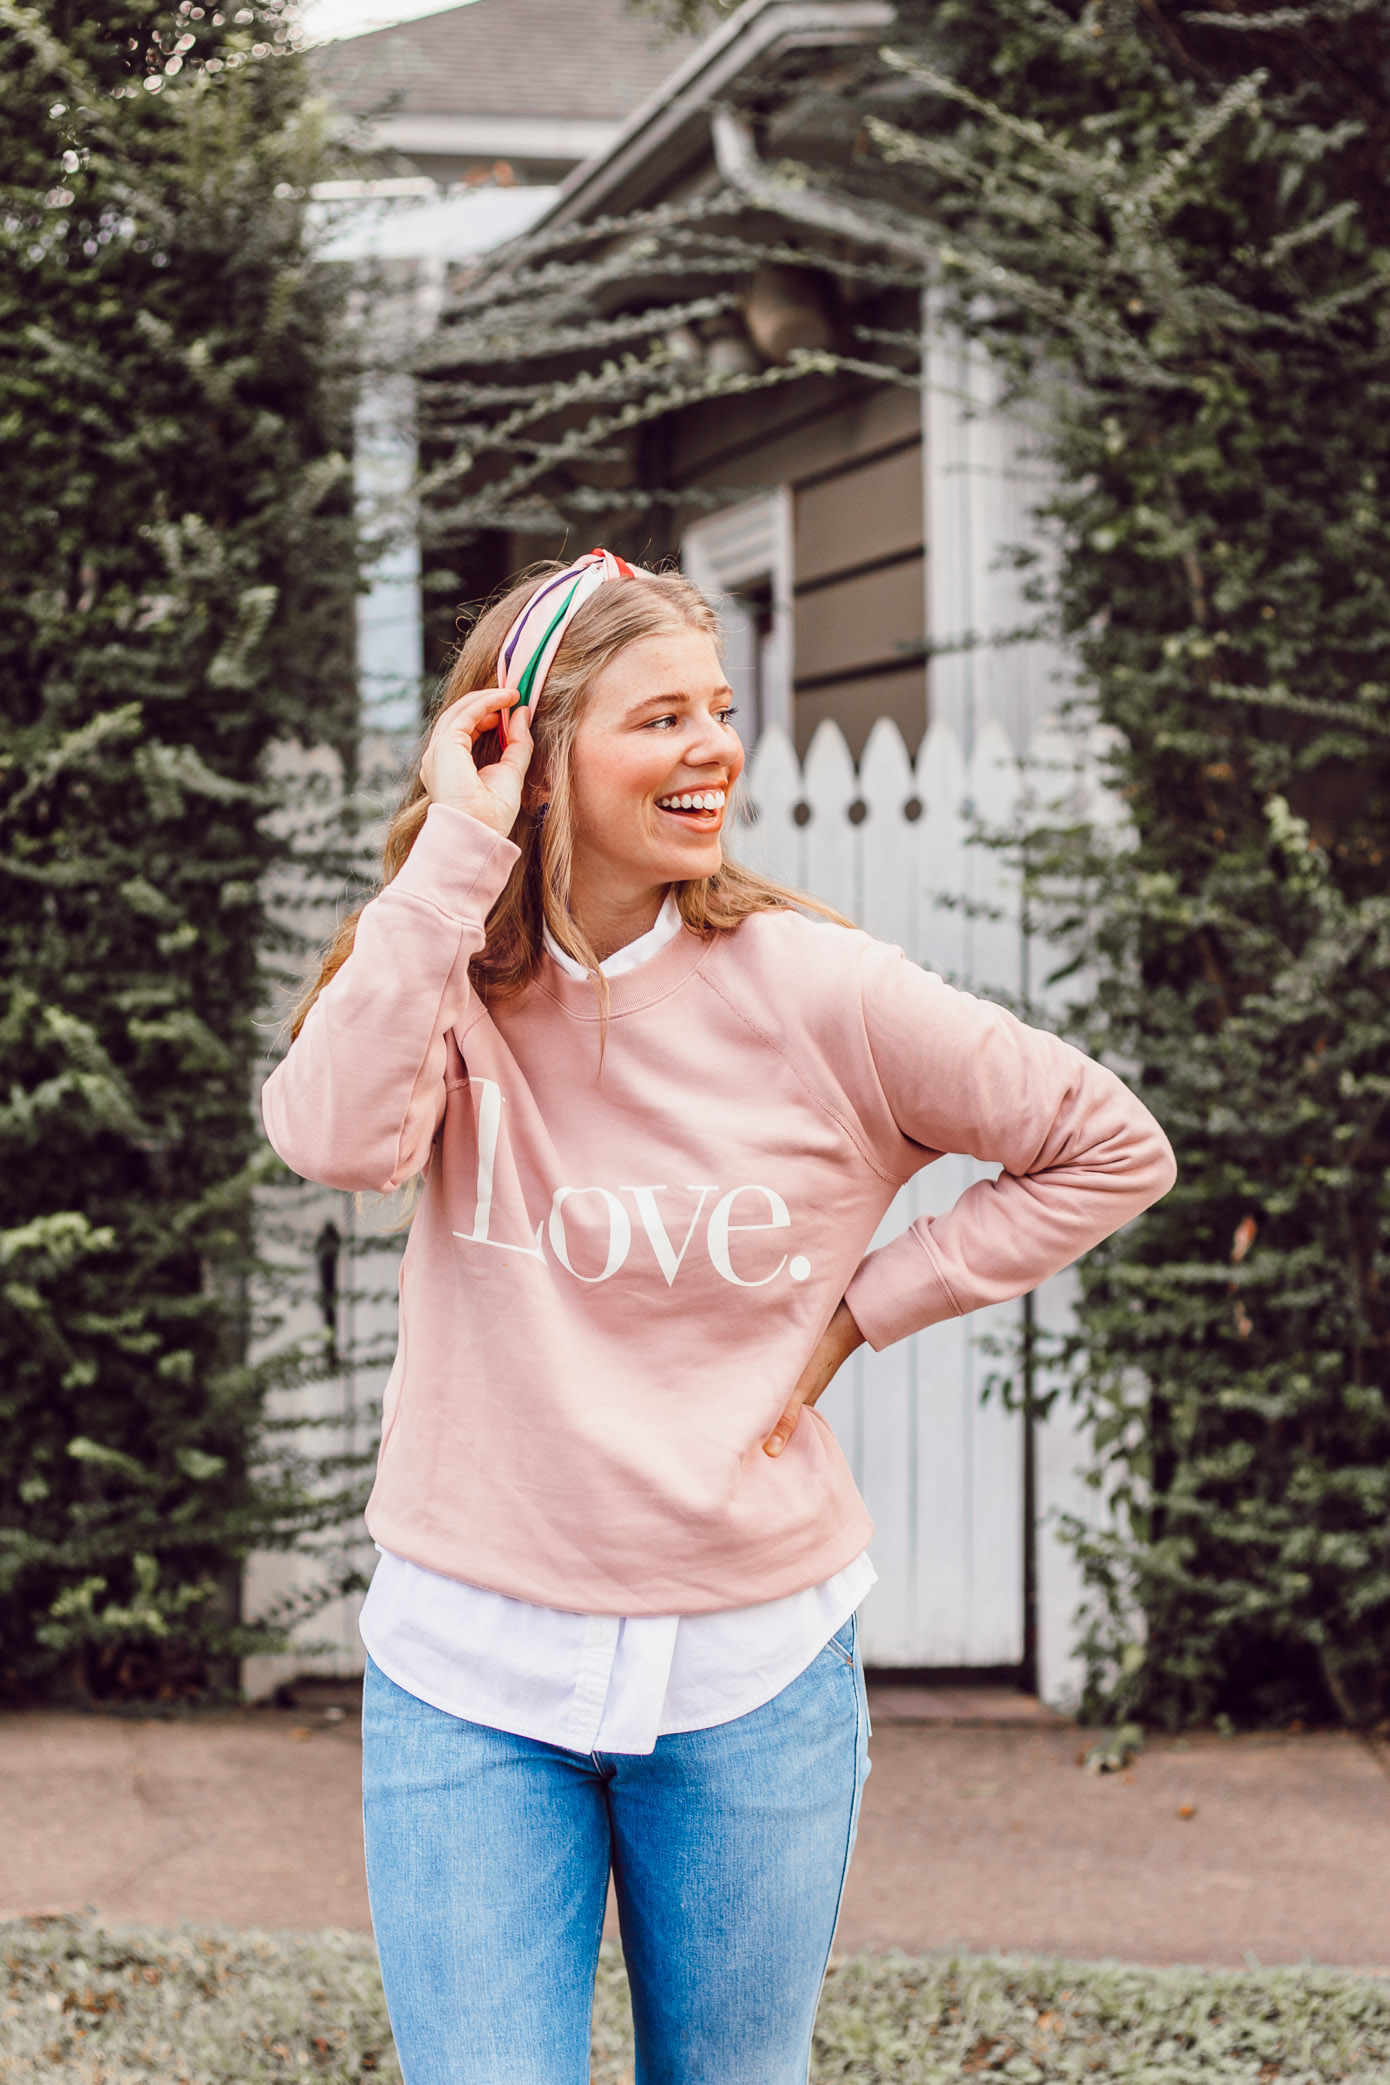 J.Crew Love Graphic Sweatshirt | How to Style a Sweatshirt for a Feminine Look featured on Louella Reese Blog